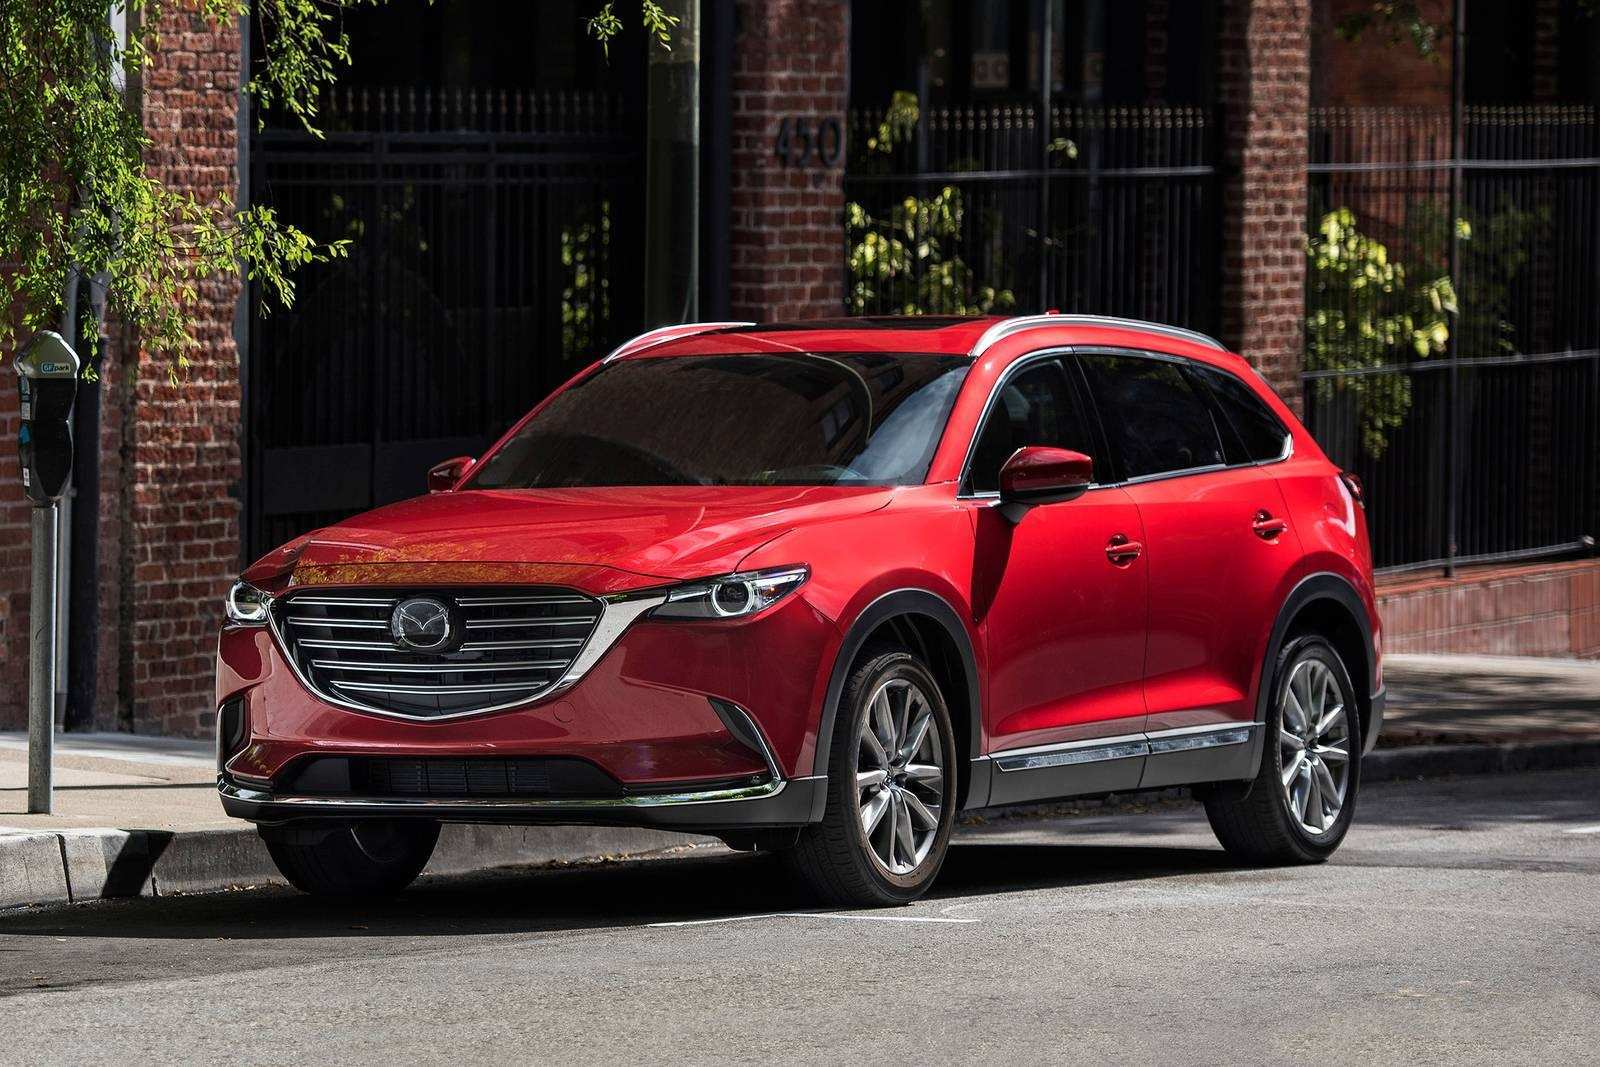 35 New 2019 Mazda Cx 9 Price Design And Review